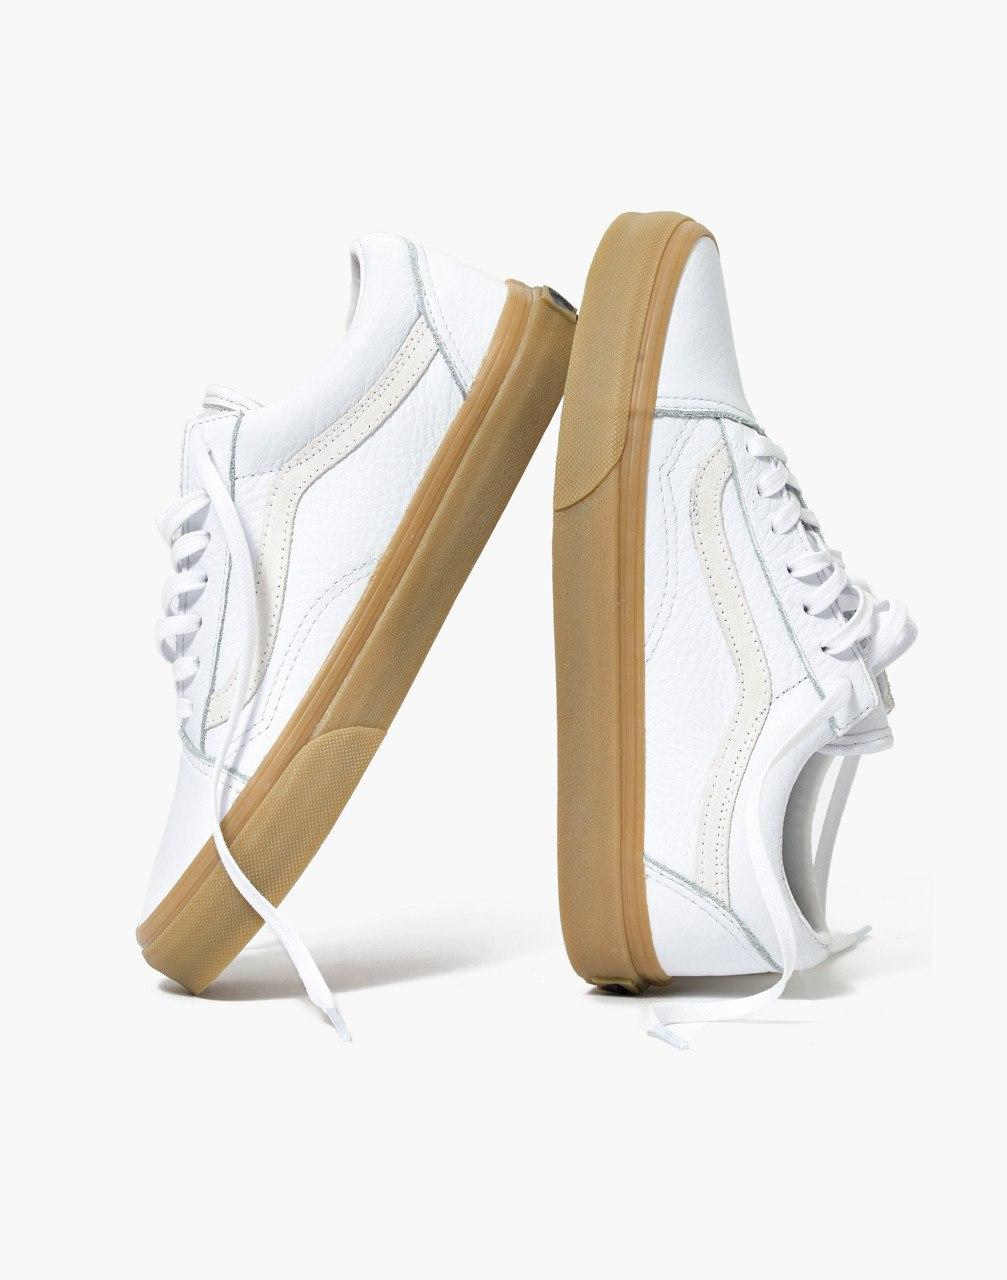 a1c6026bb3 Lyst - Madewell X Vans Unisex Old Skool Lace-up Sneakers In Tumbled ...